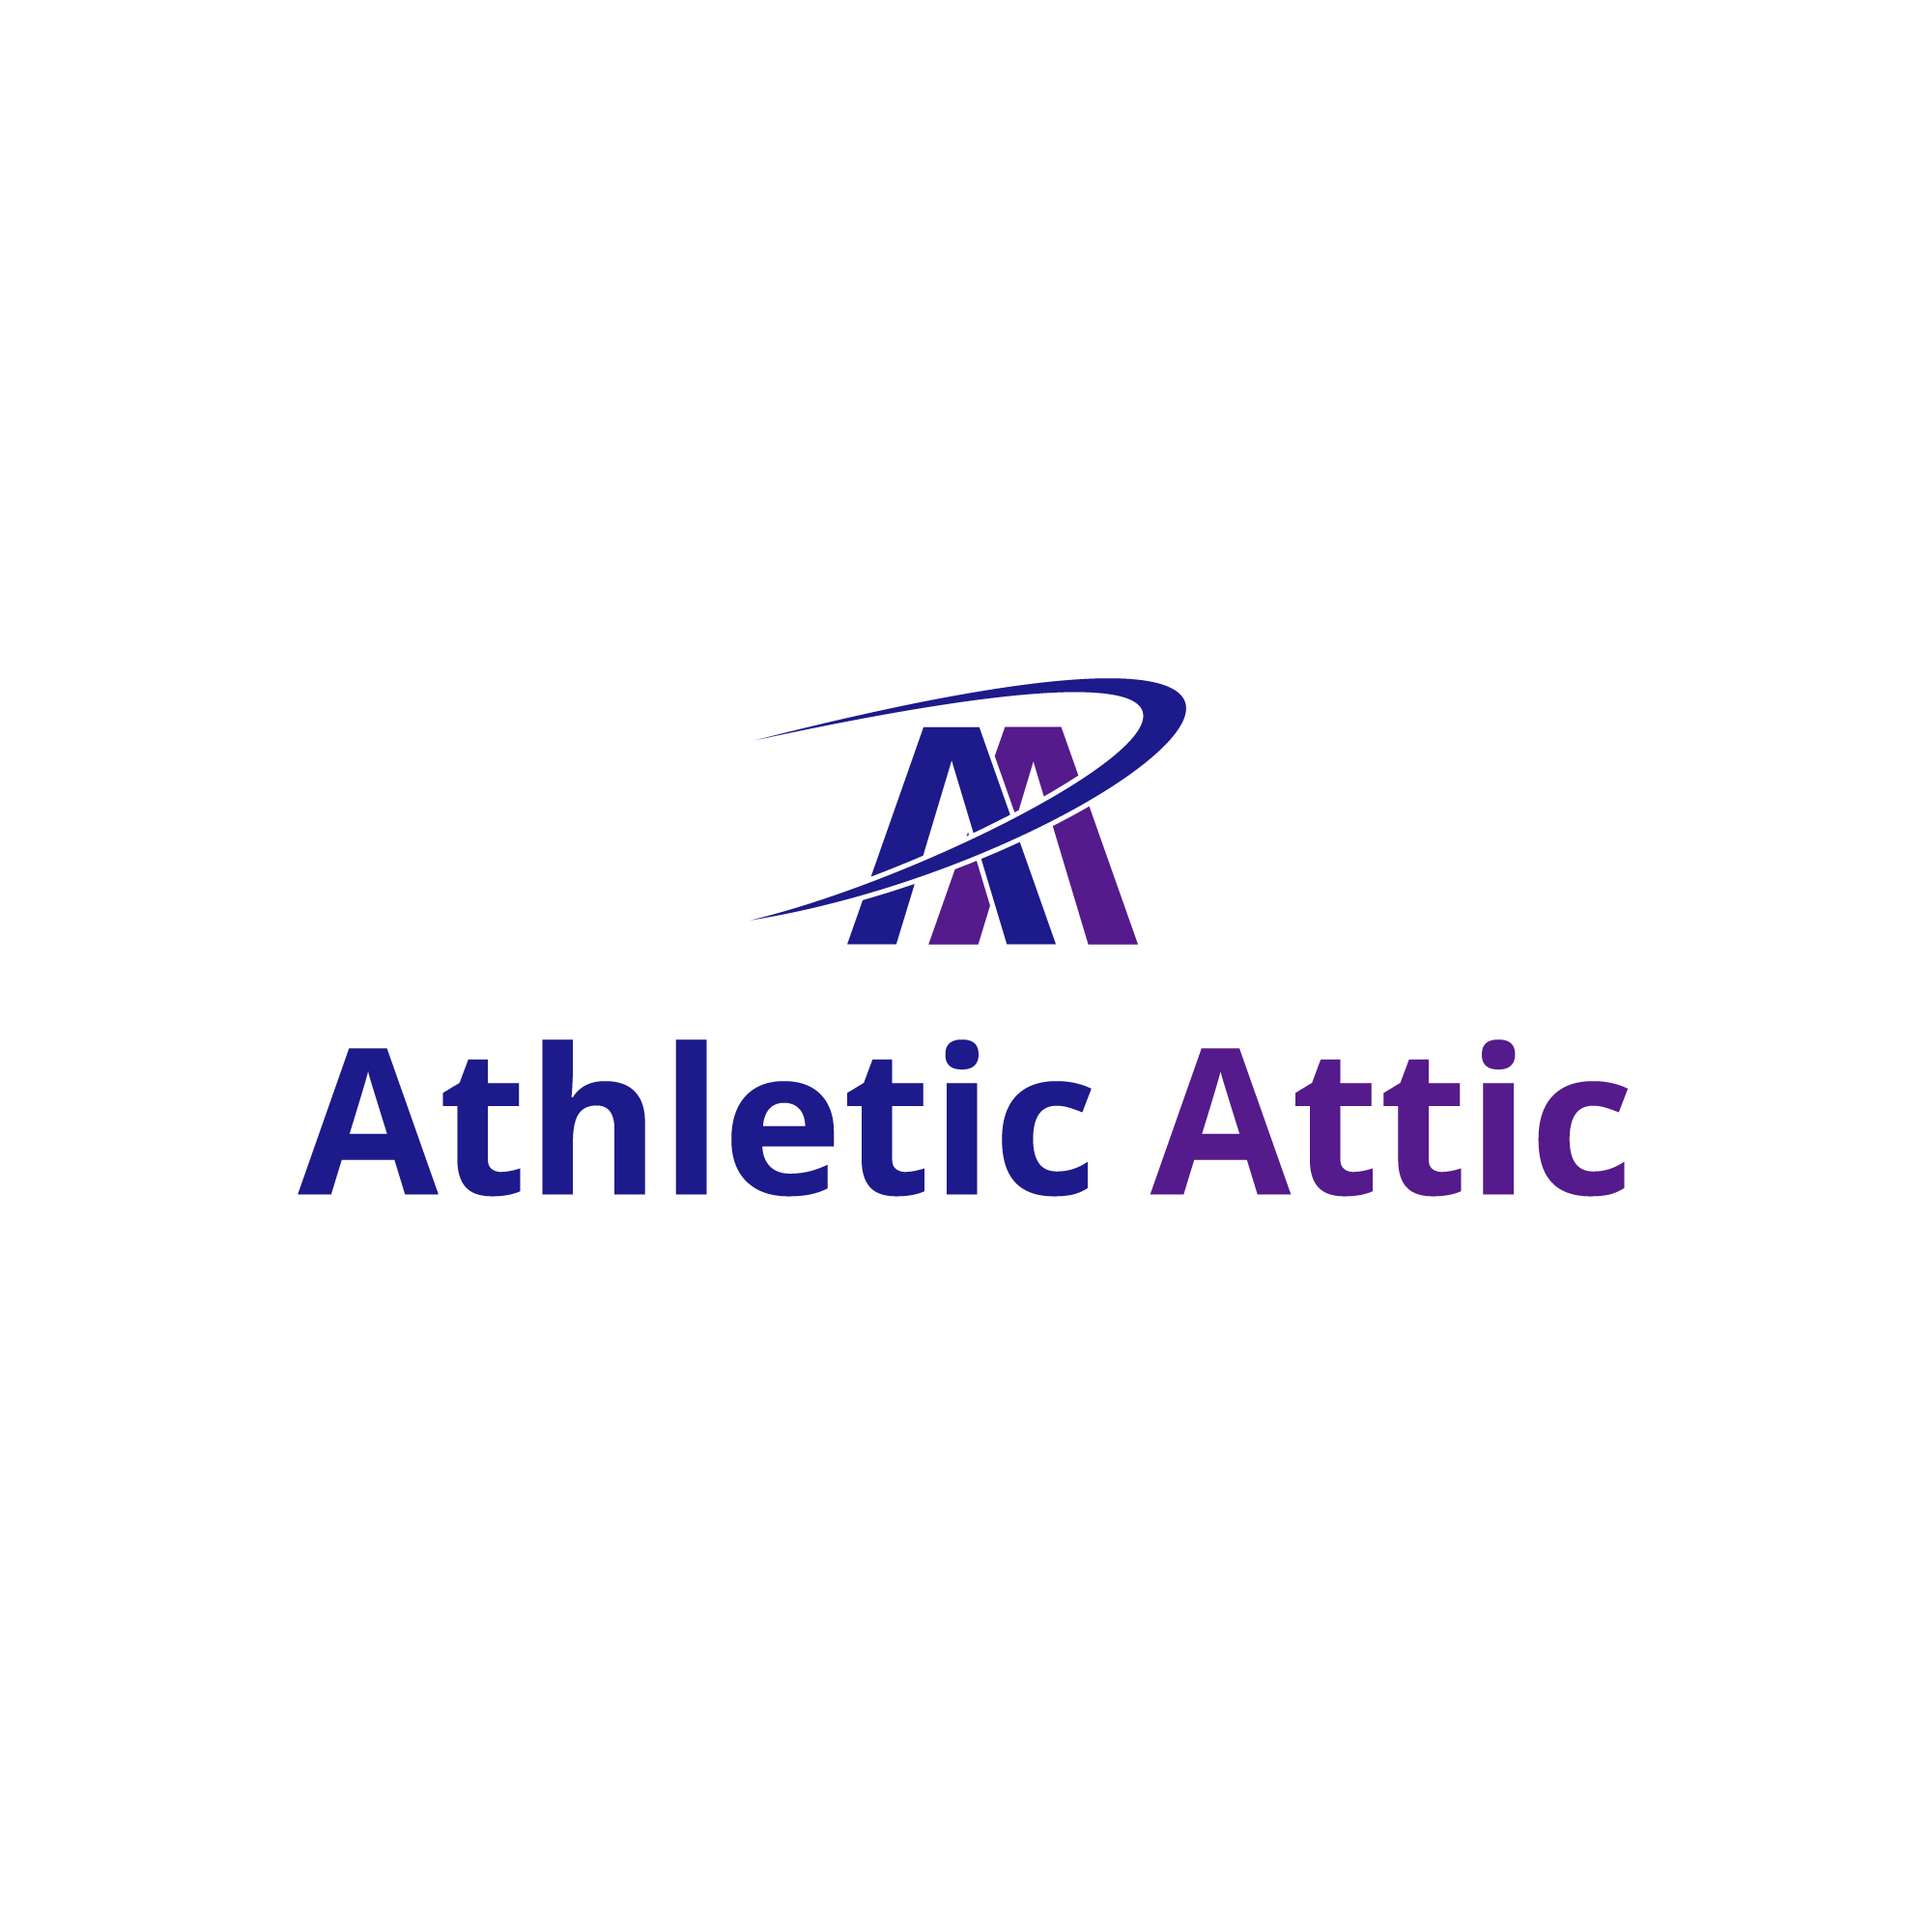 Logo Design by Zoran Lesevic - Entry No. 20 in the Logo Design Contest Fun Logo Design for Athletic Attic.